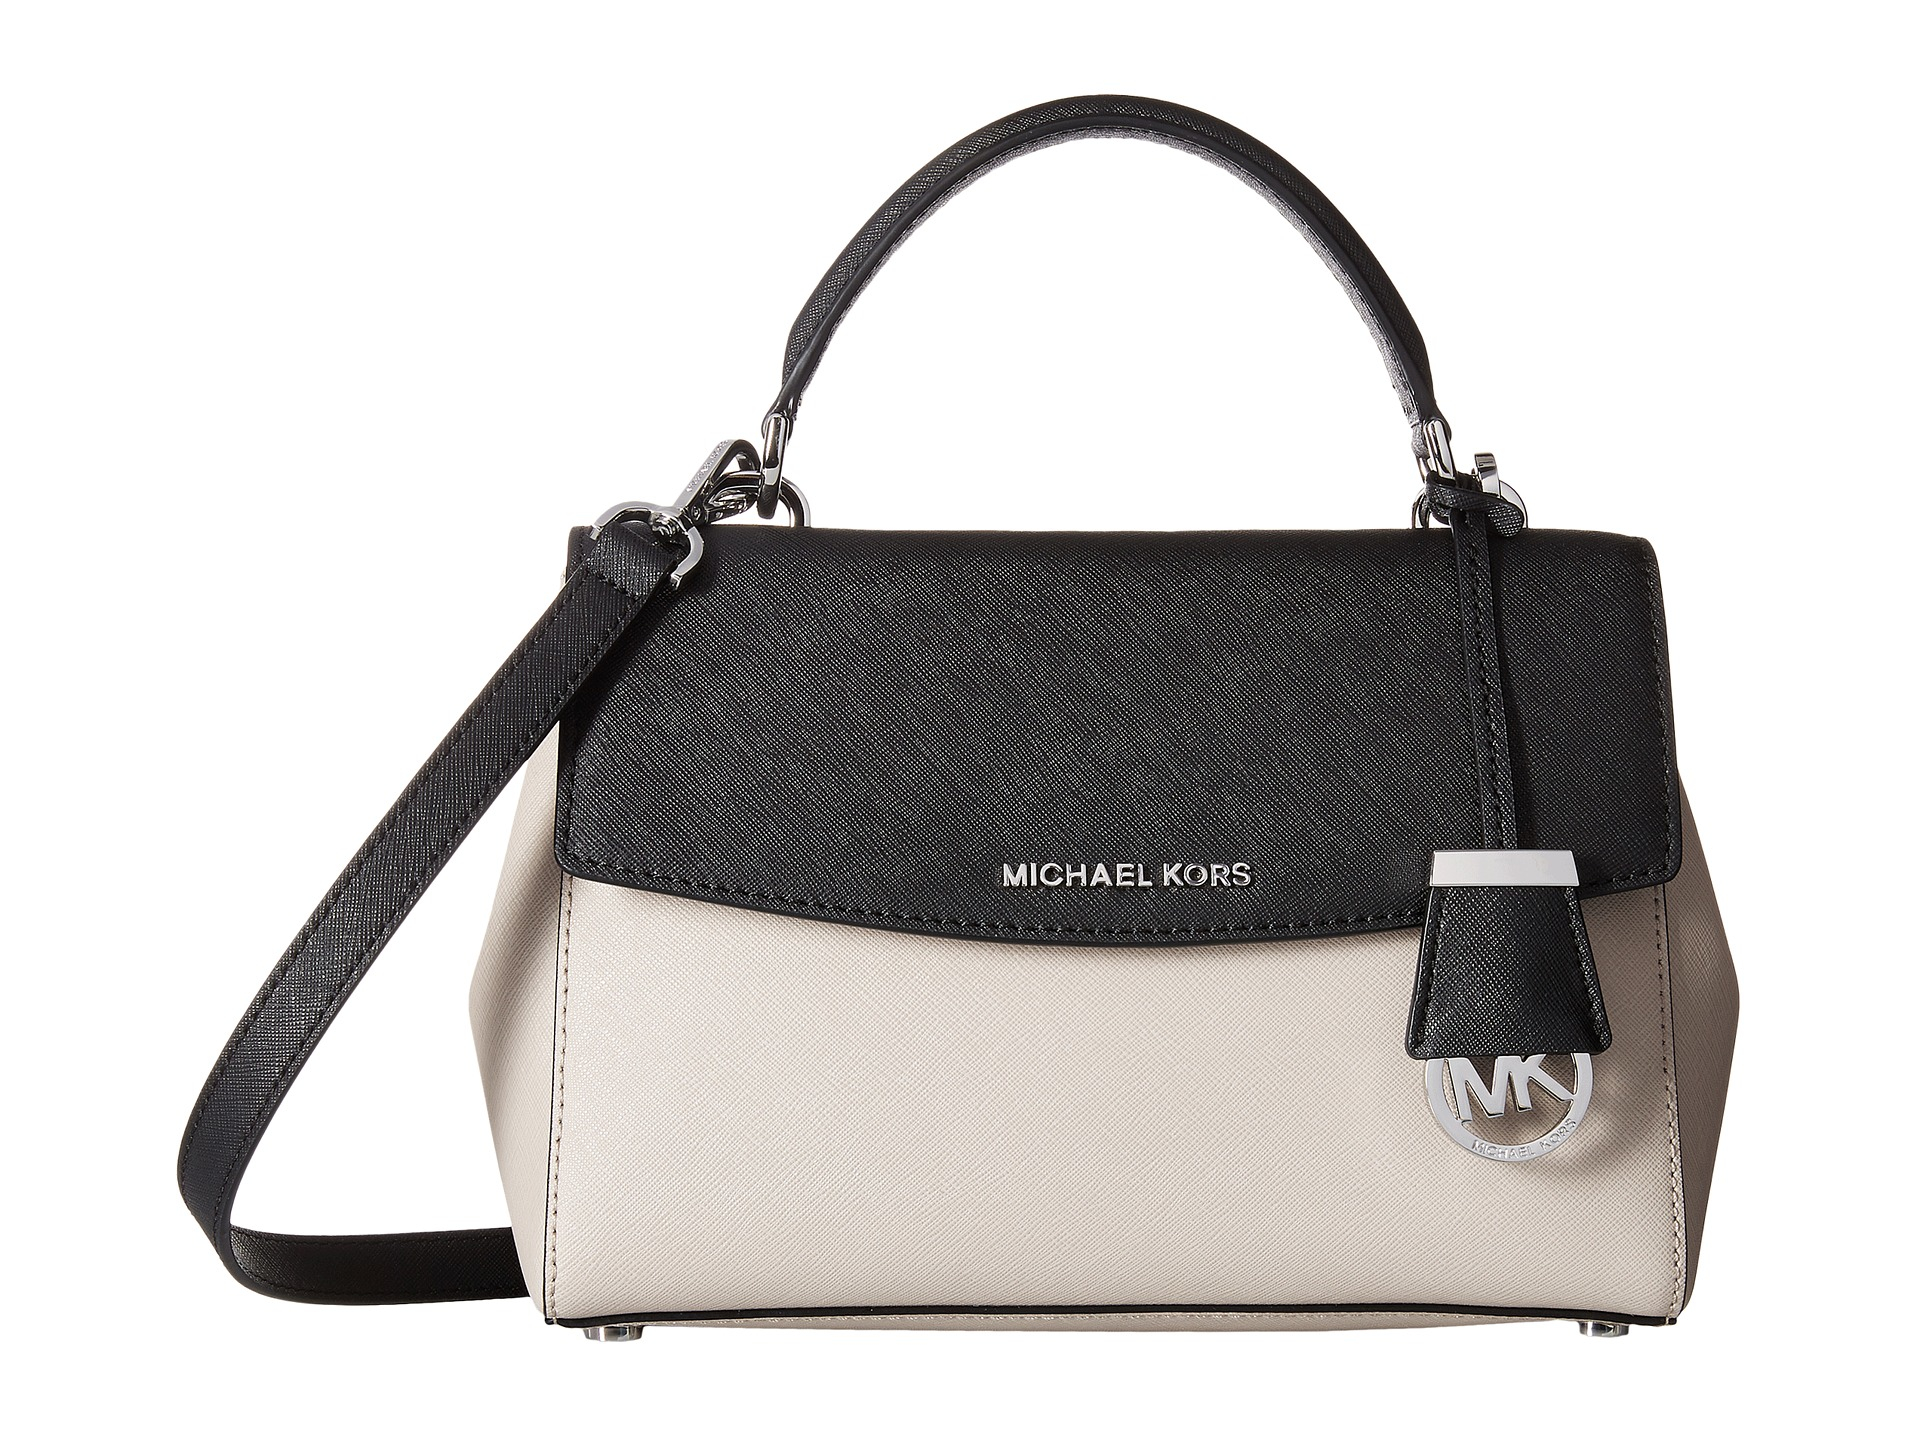 712b674cfa08 Gallery. Previously sold at: Zappos · Women's Michael Kors Charm